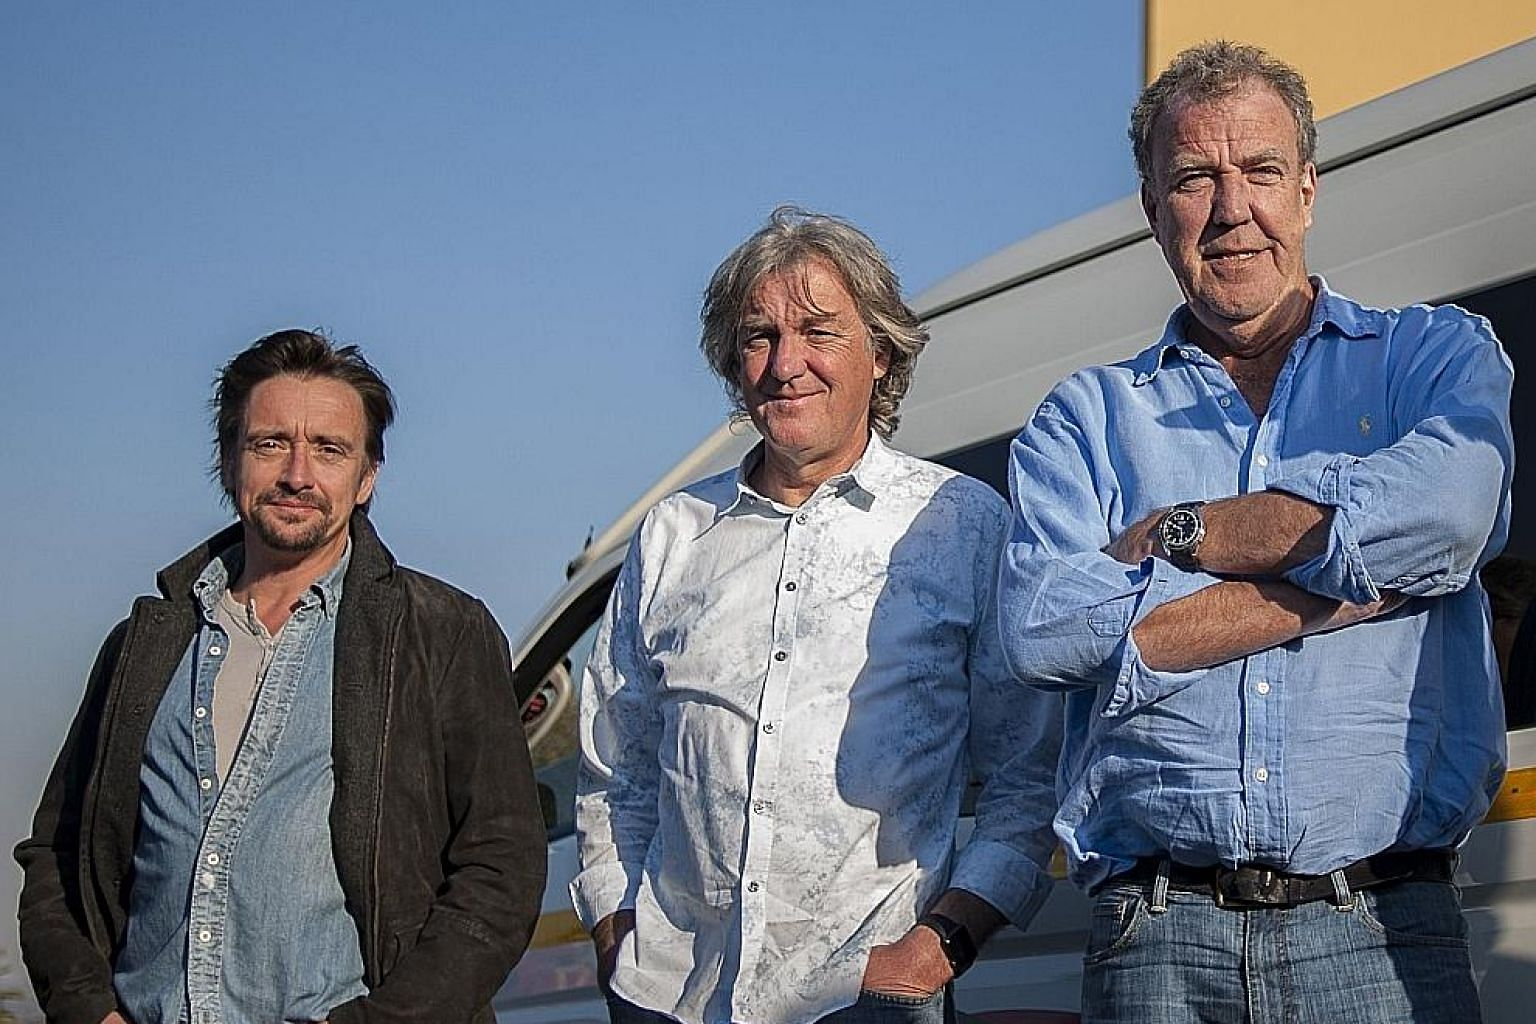 Former Top Gear host Jeremy Clarkson (left) will be hosting a new show for Amazon's subscription service with former co-hosts Richard Hammond (far left) and James May (centre).